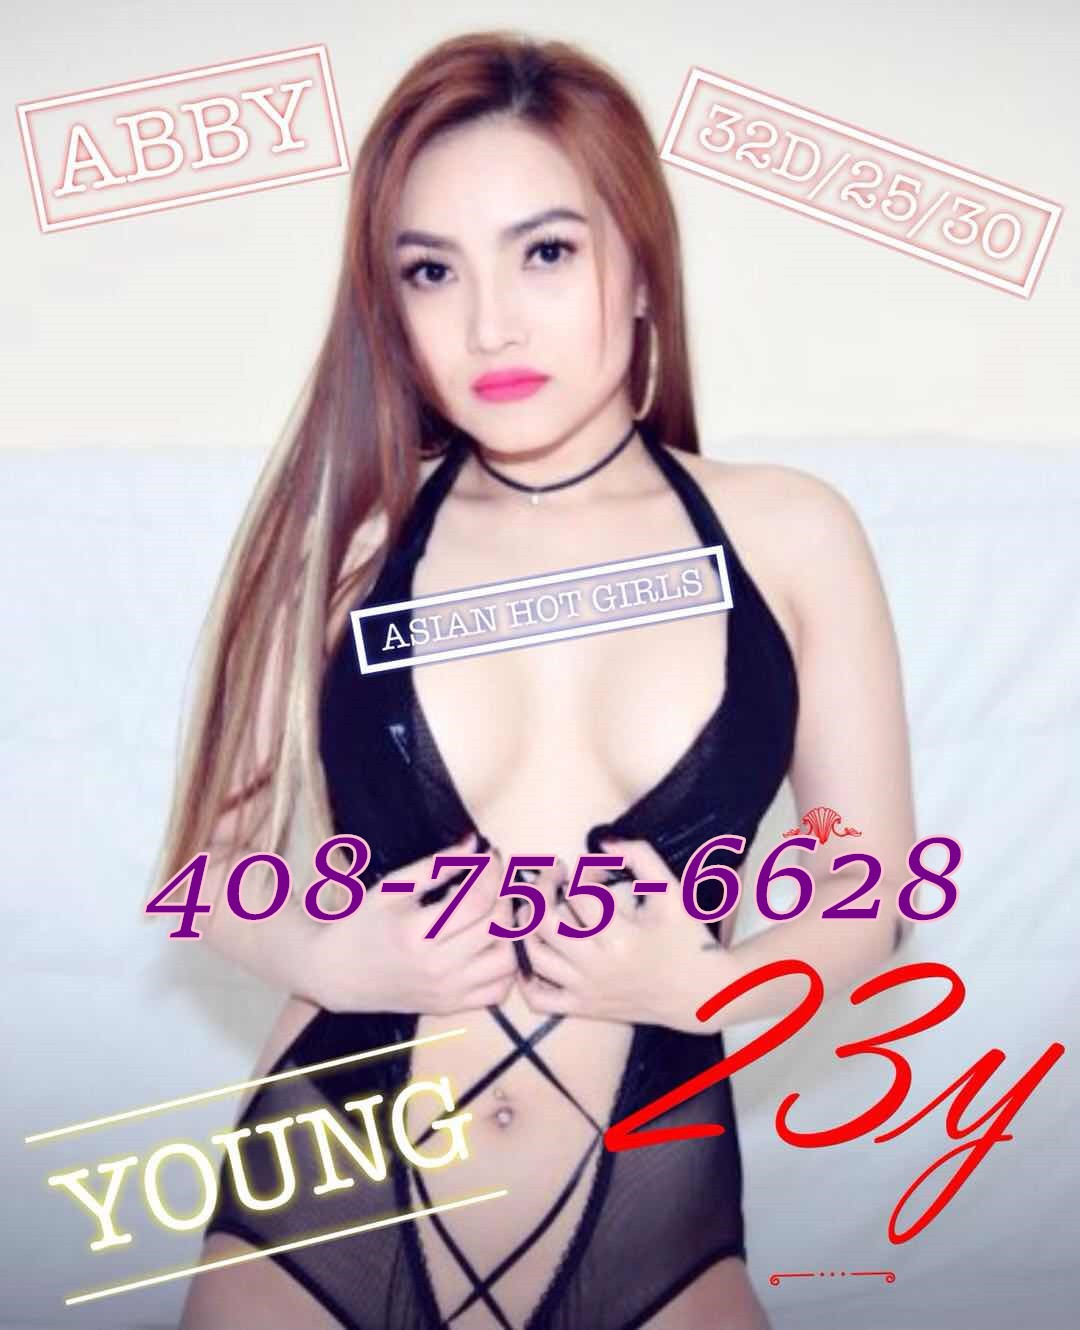 🎊🎊Mountainview 408-755-6628 🎊🎊 Special TAIWAN Asian Model🎊🎊Best Service